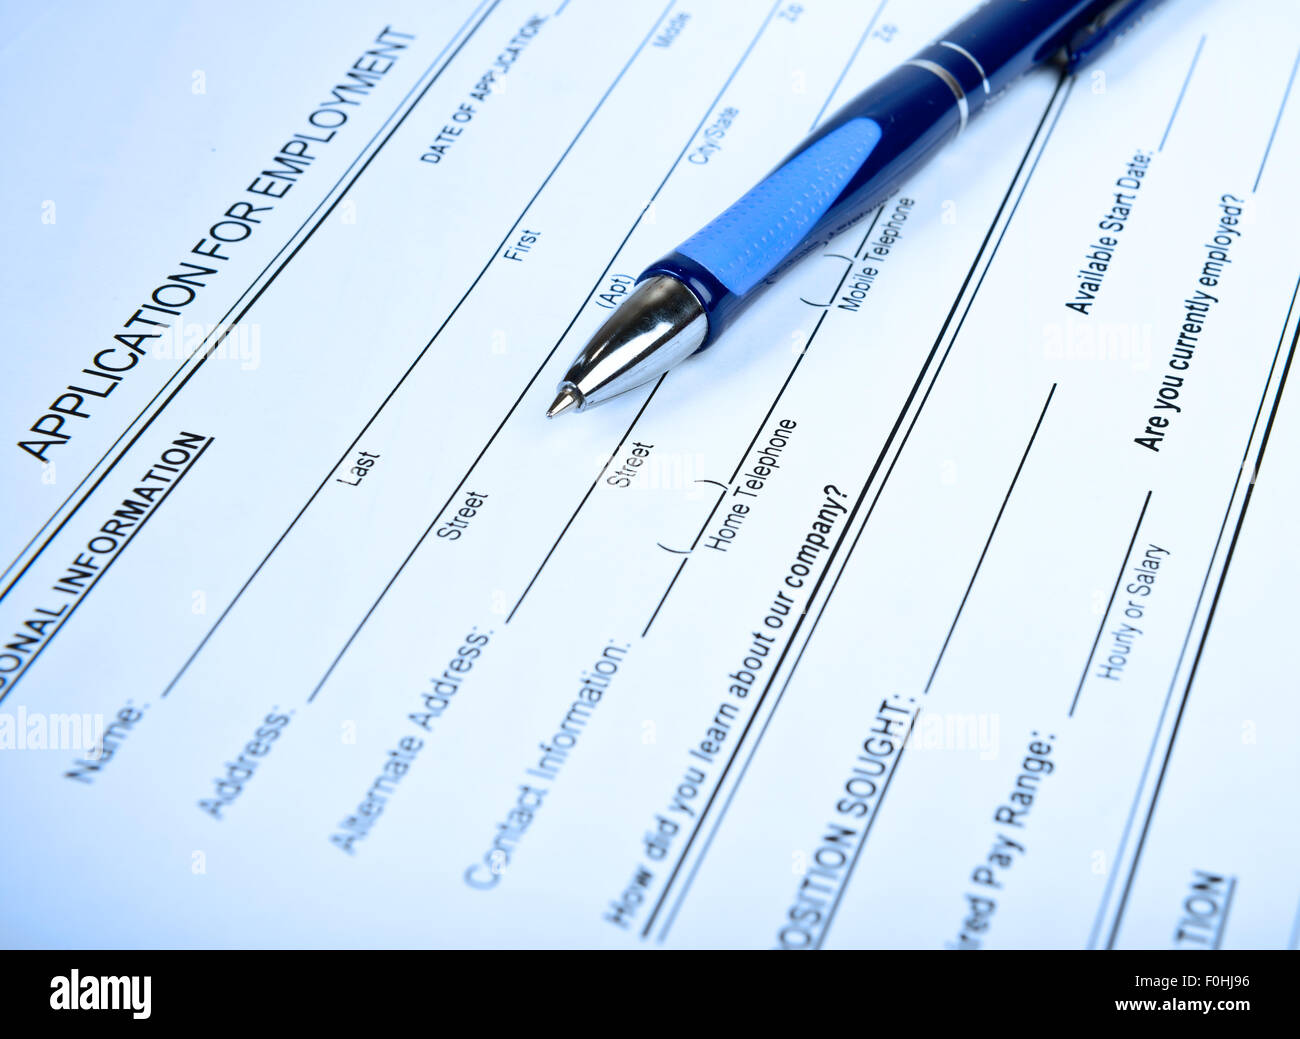 Application for employment toned in blue - Stock Image